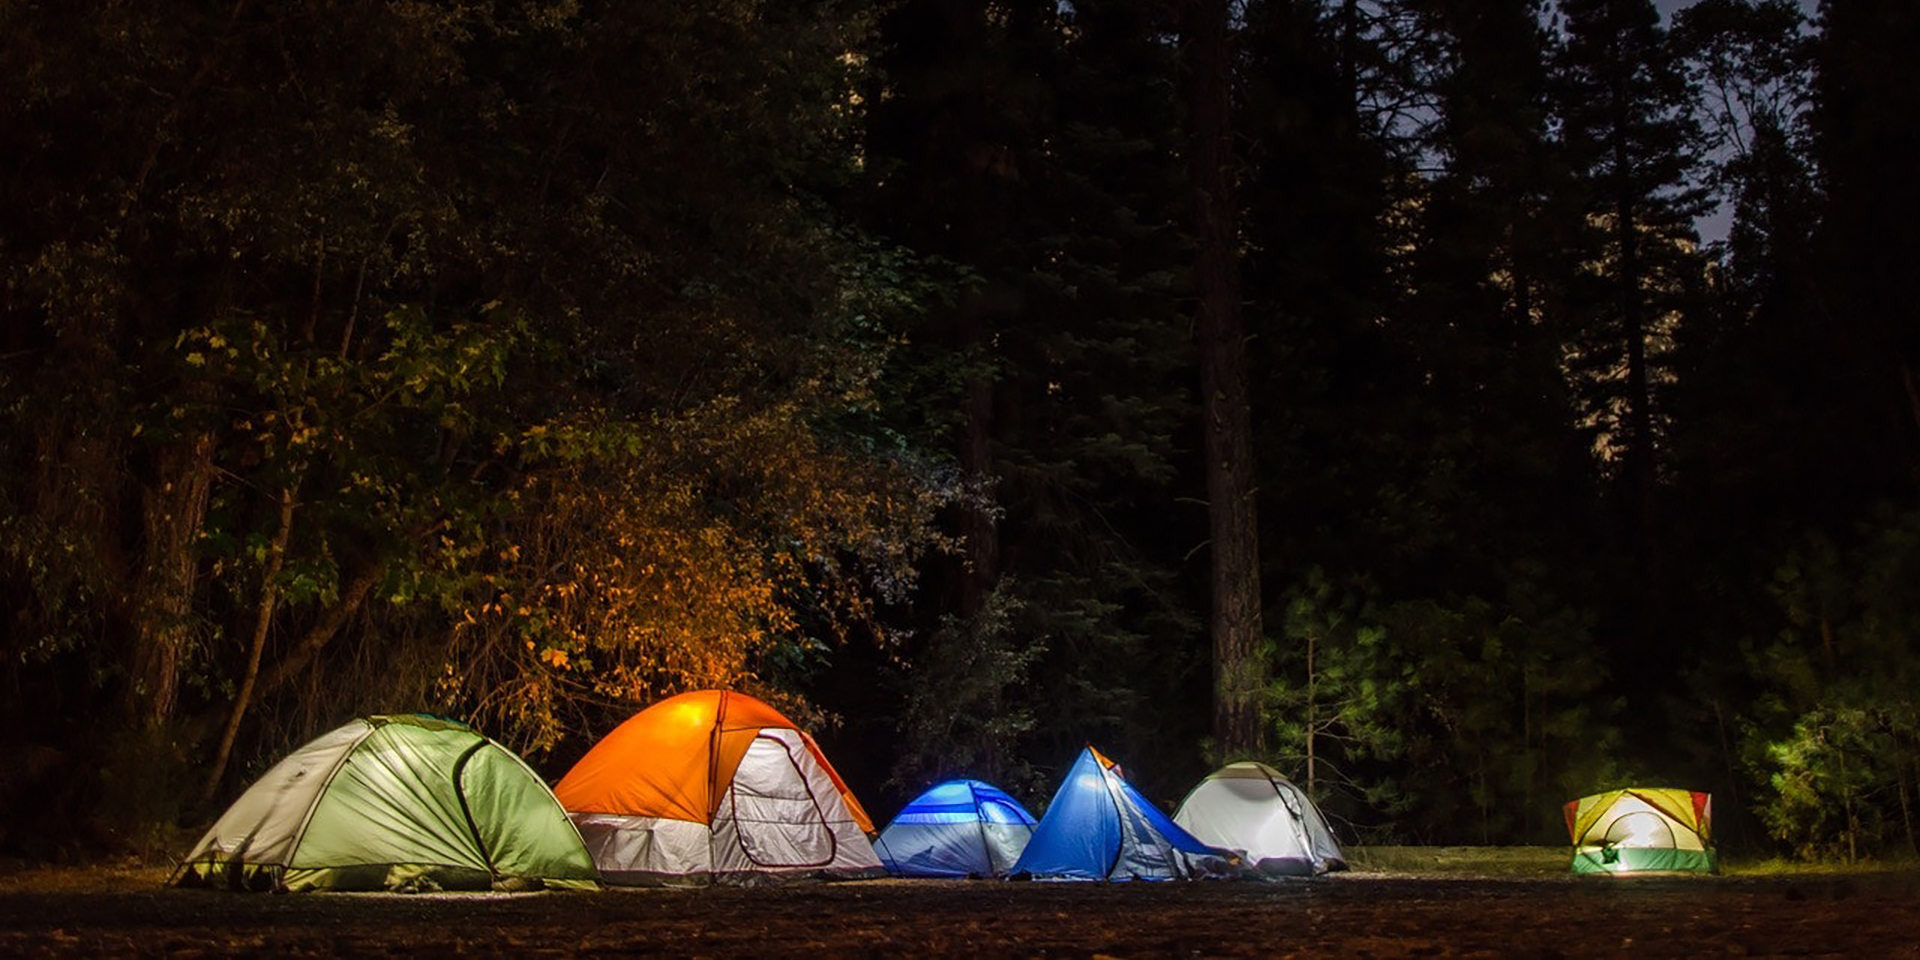 What are the benefits of camping trailers?